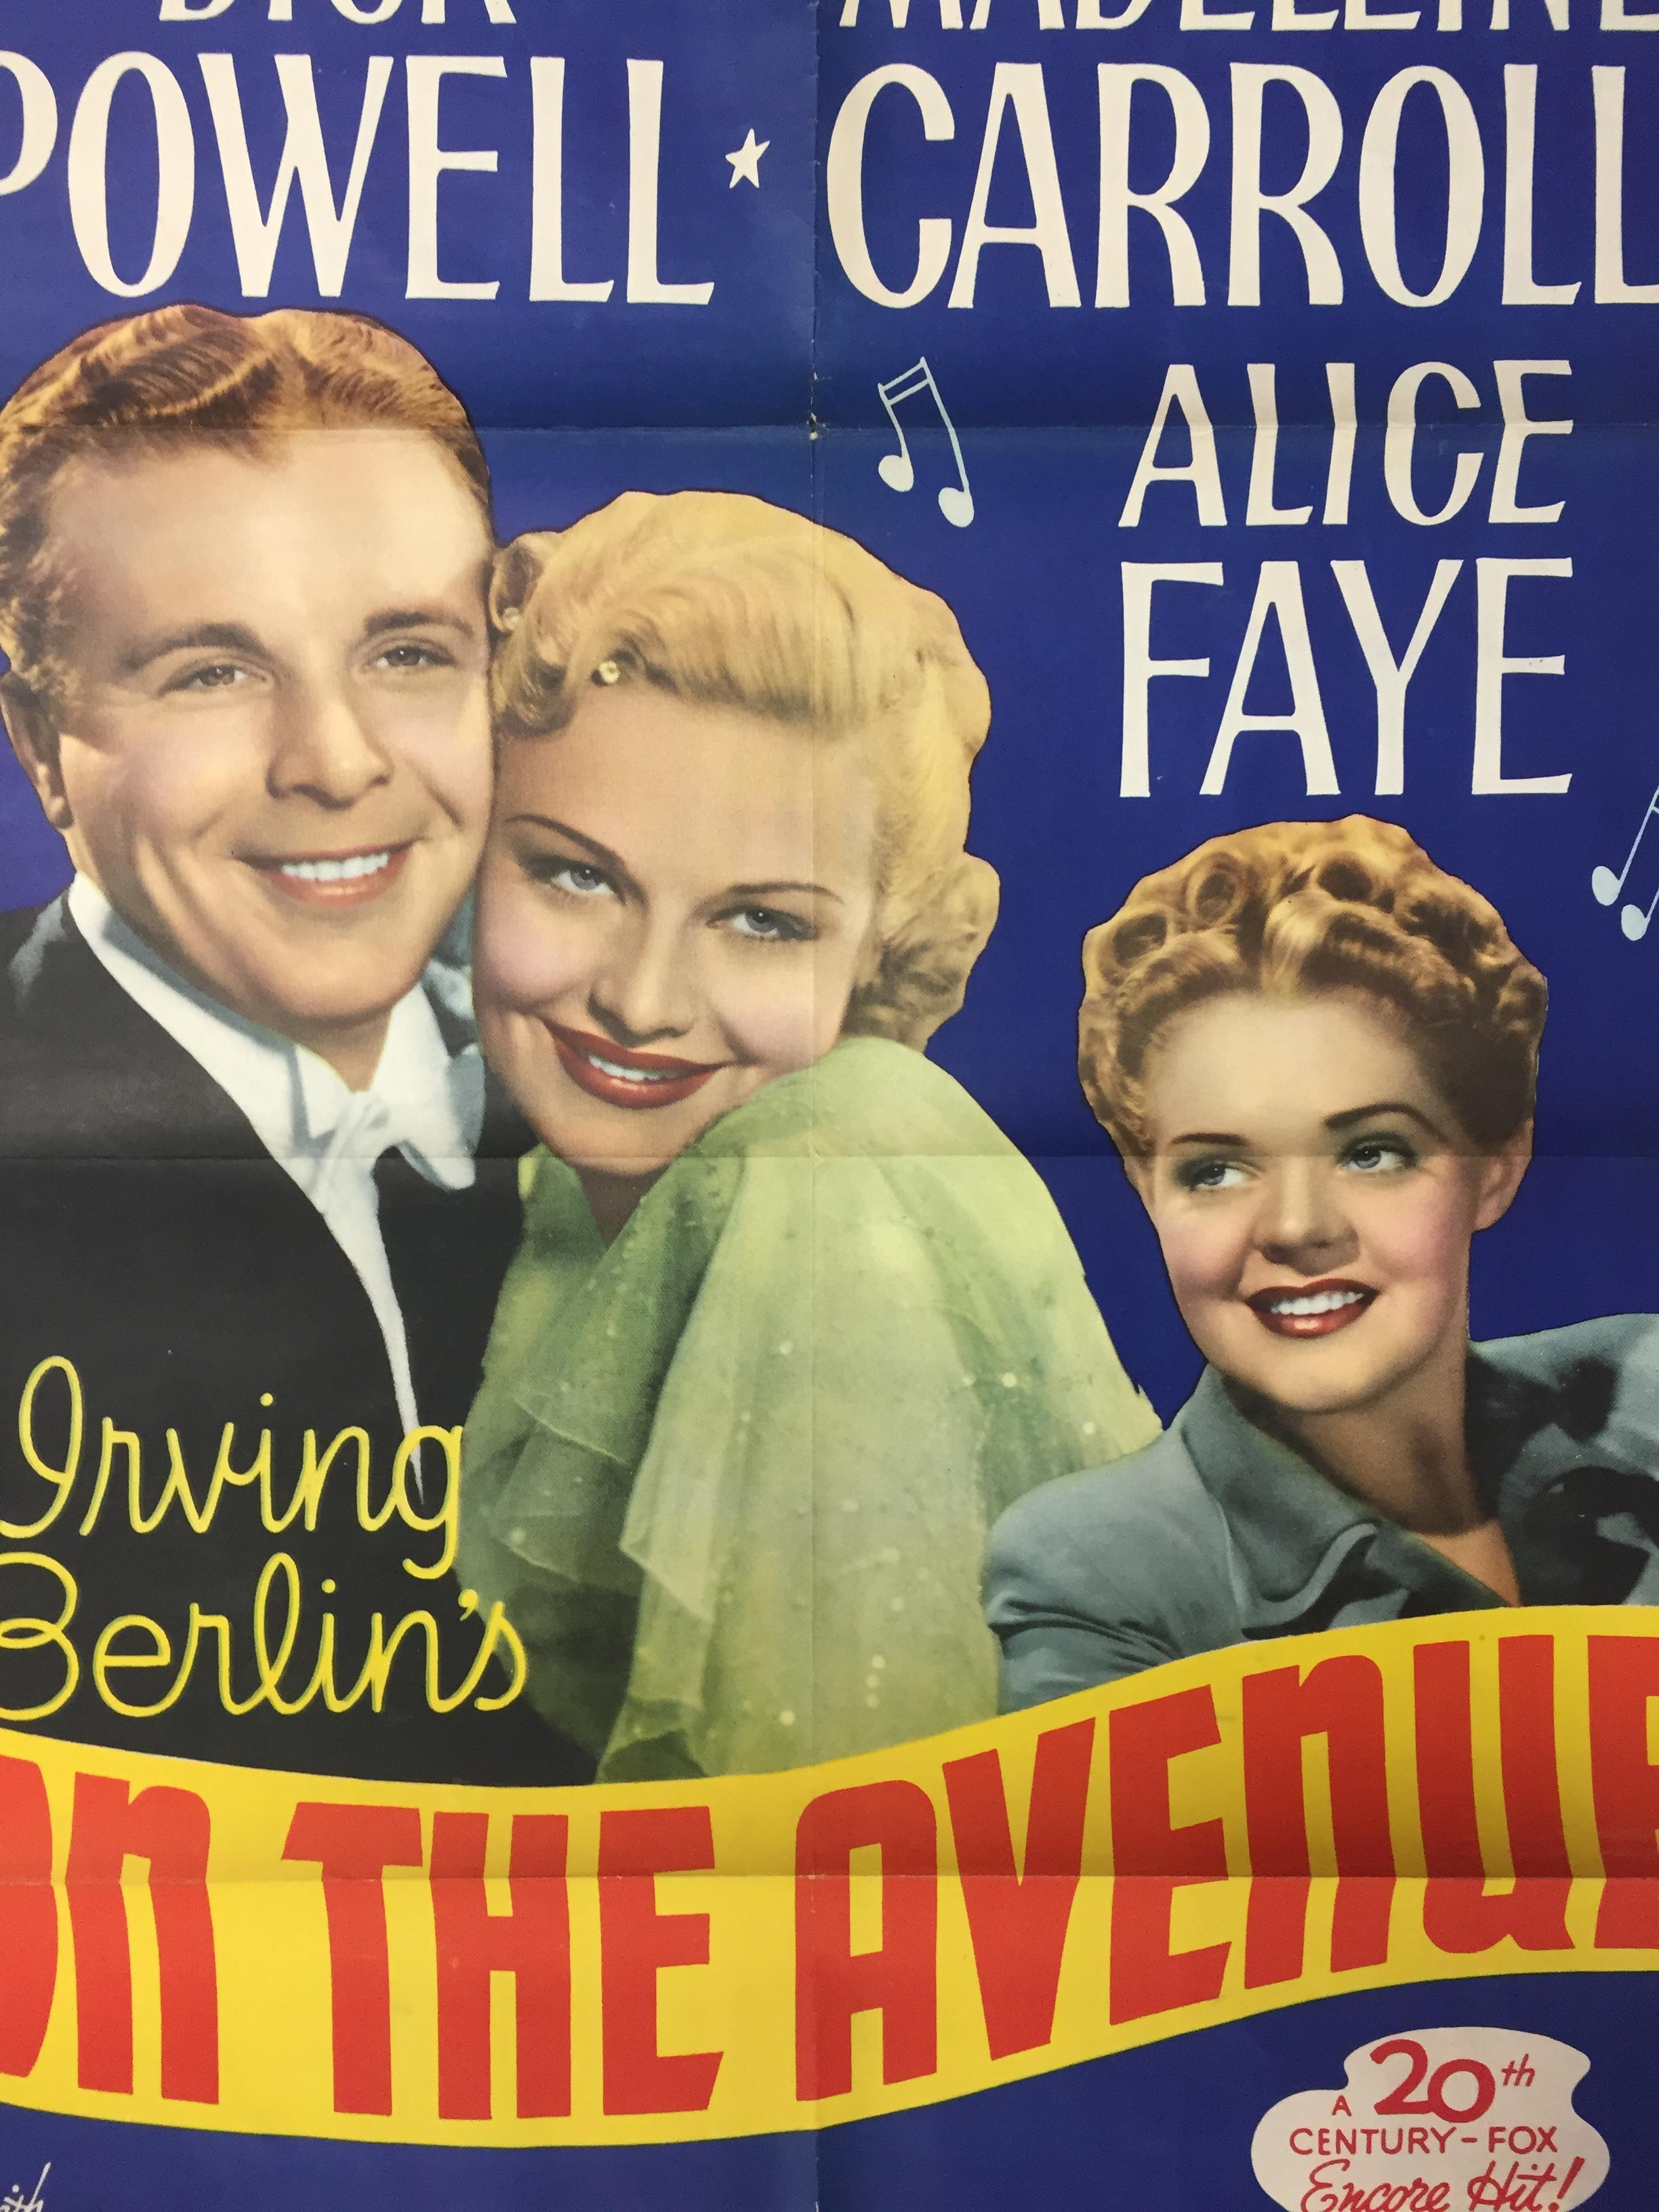 1940S COLOUR FILM POSTER 'ON THE AVENUE' 68 X 102CM (POOR CONDITION) - Image 2 of 2